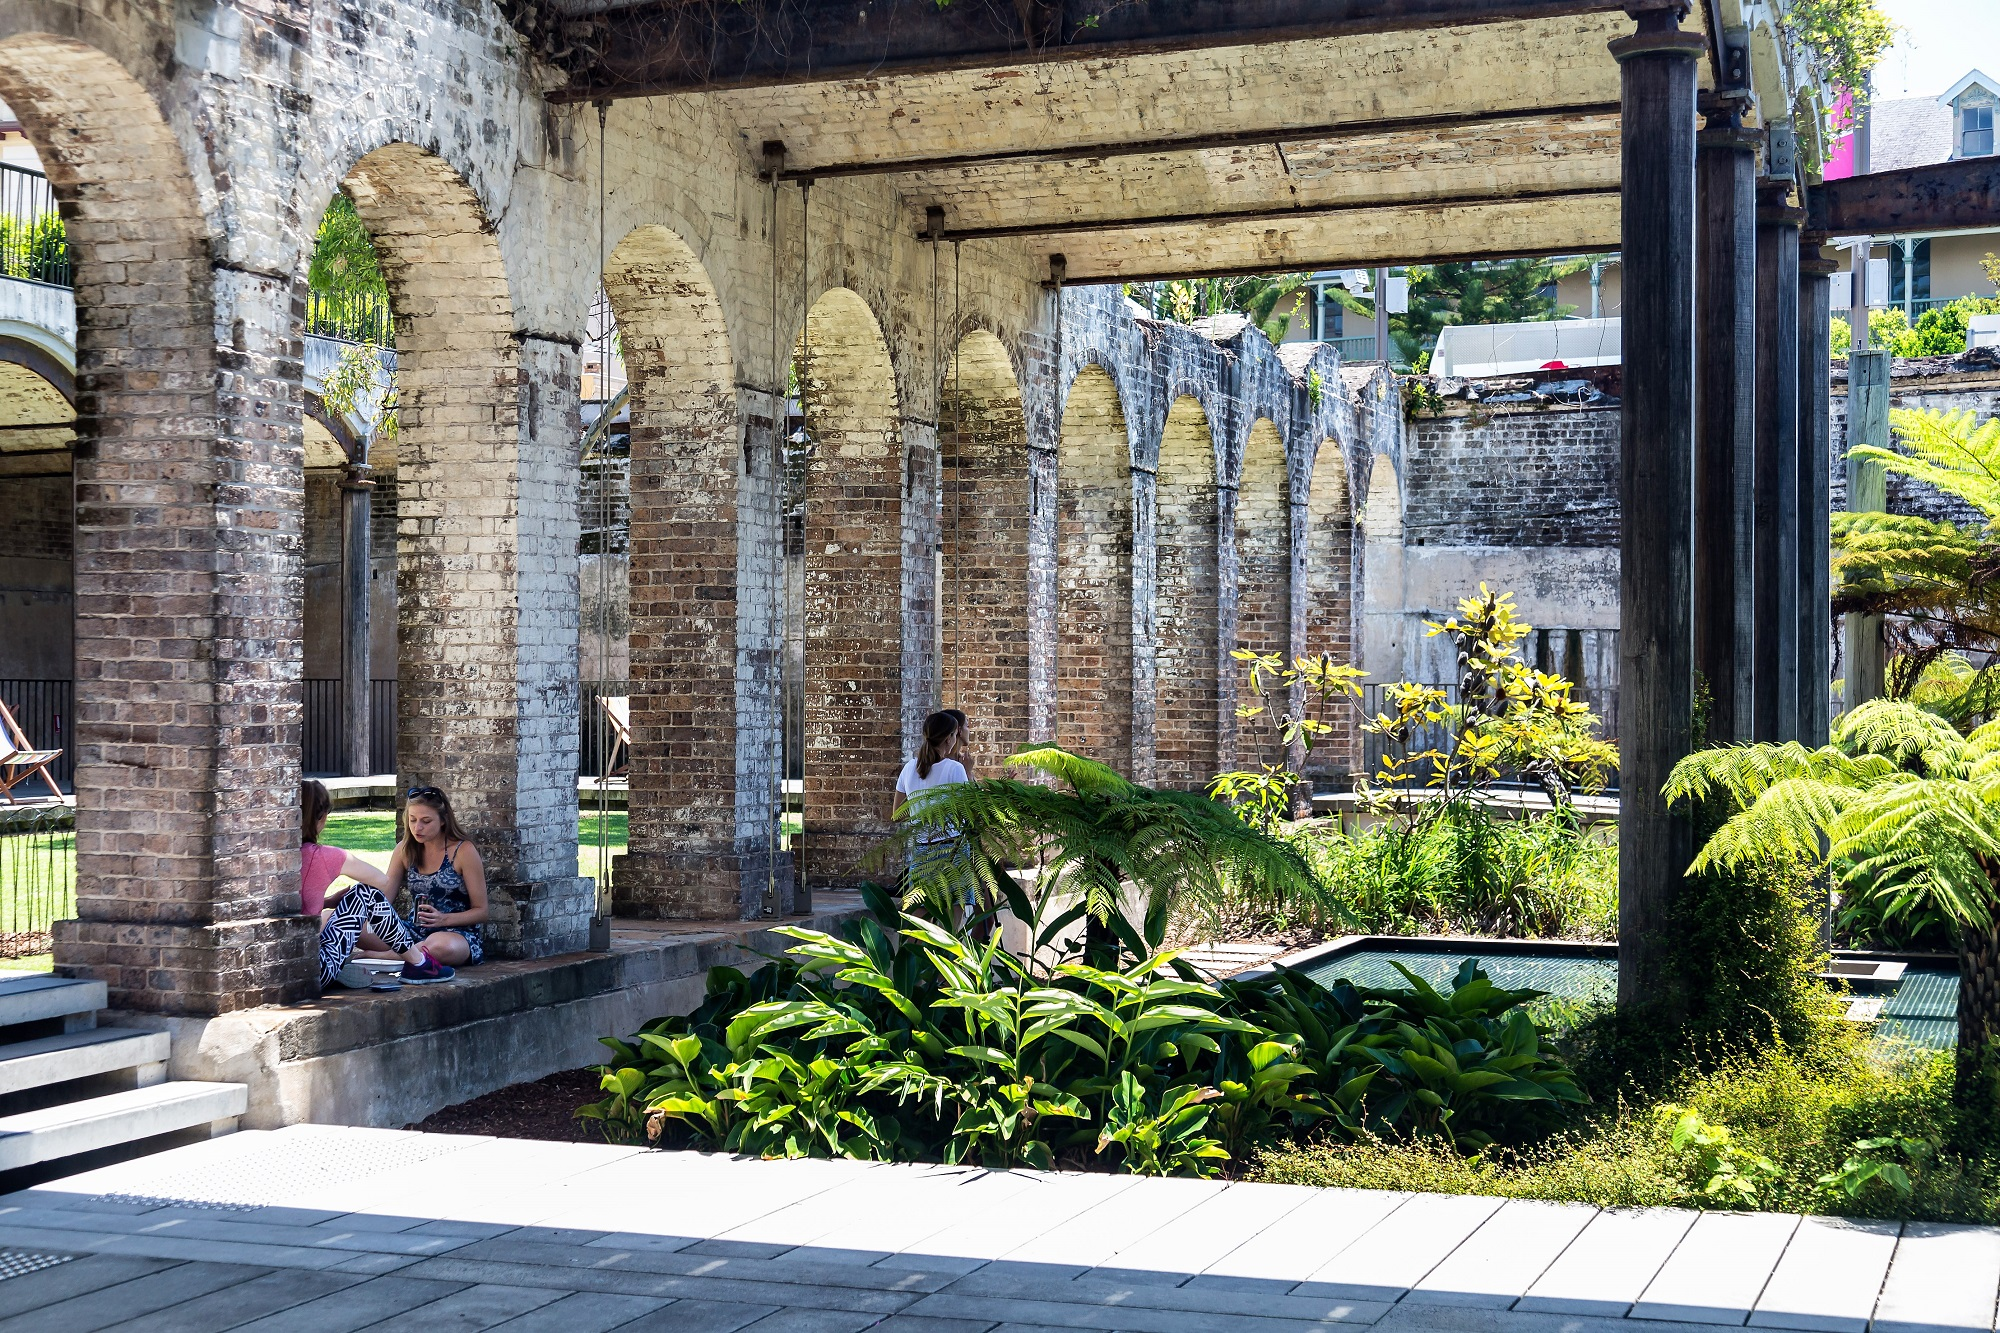 Sydney Paddington reservoir gardens